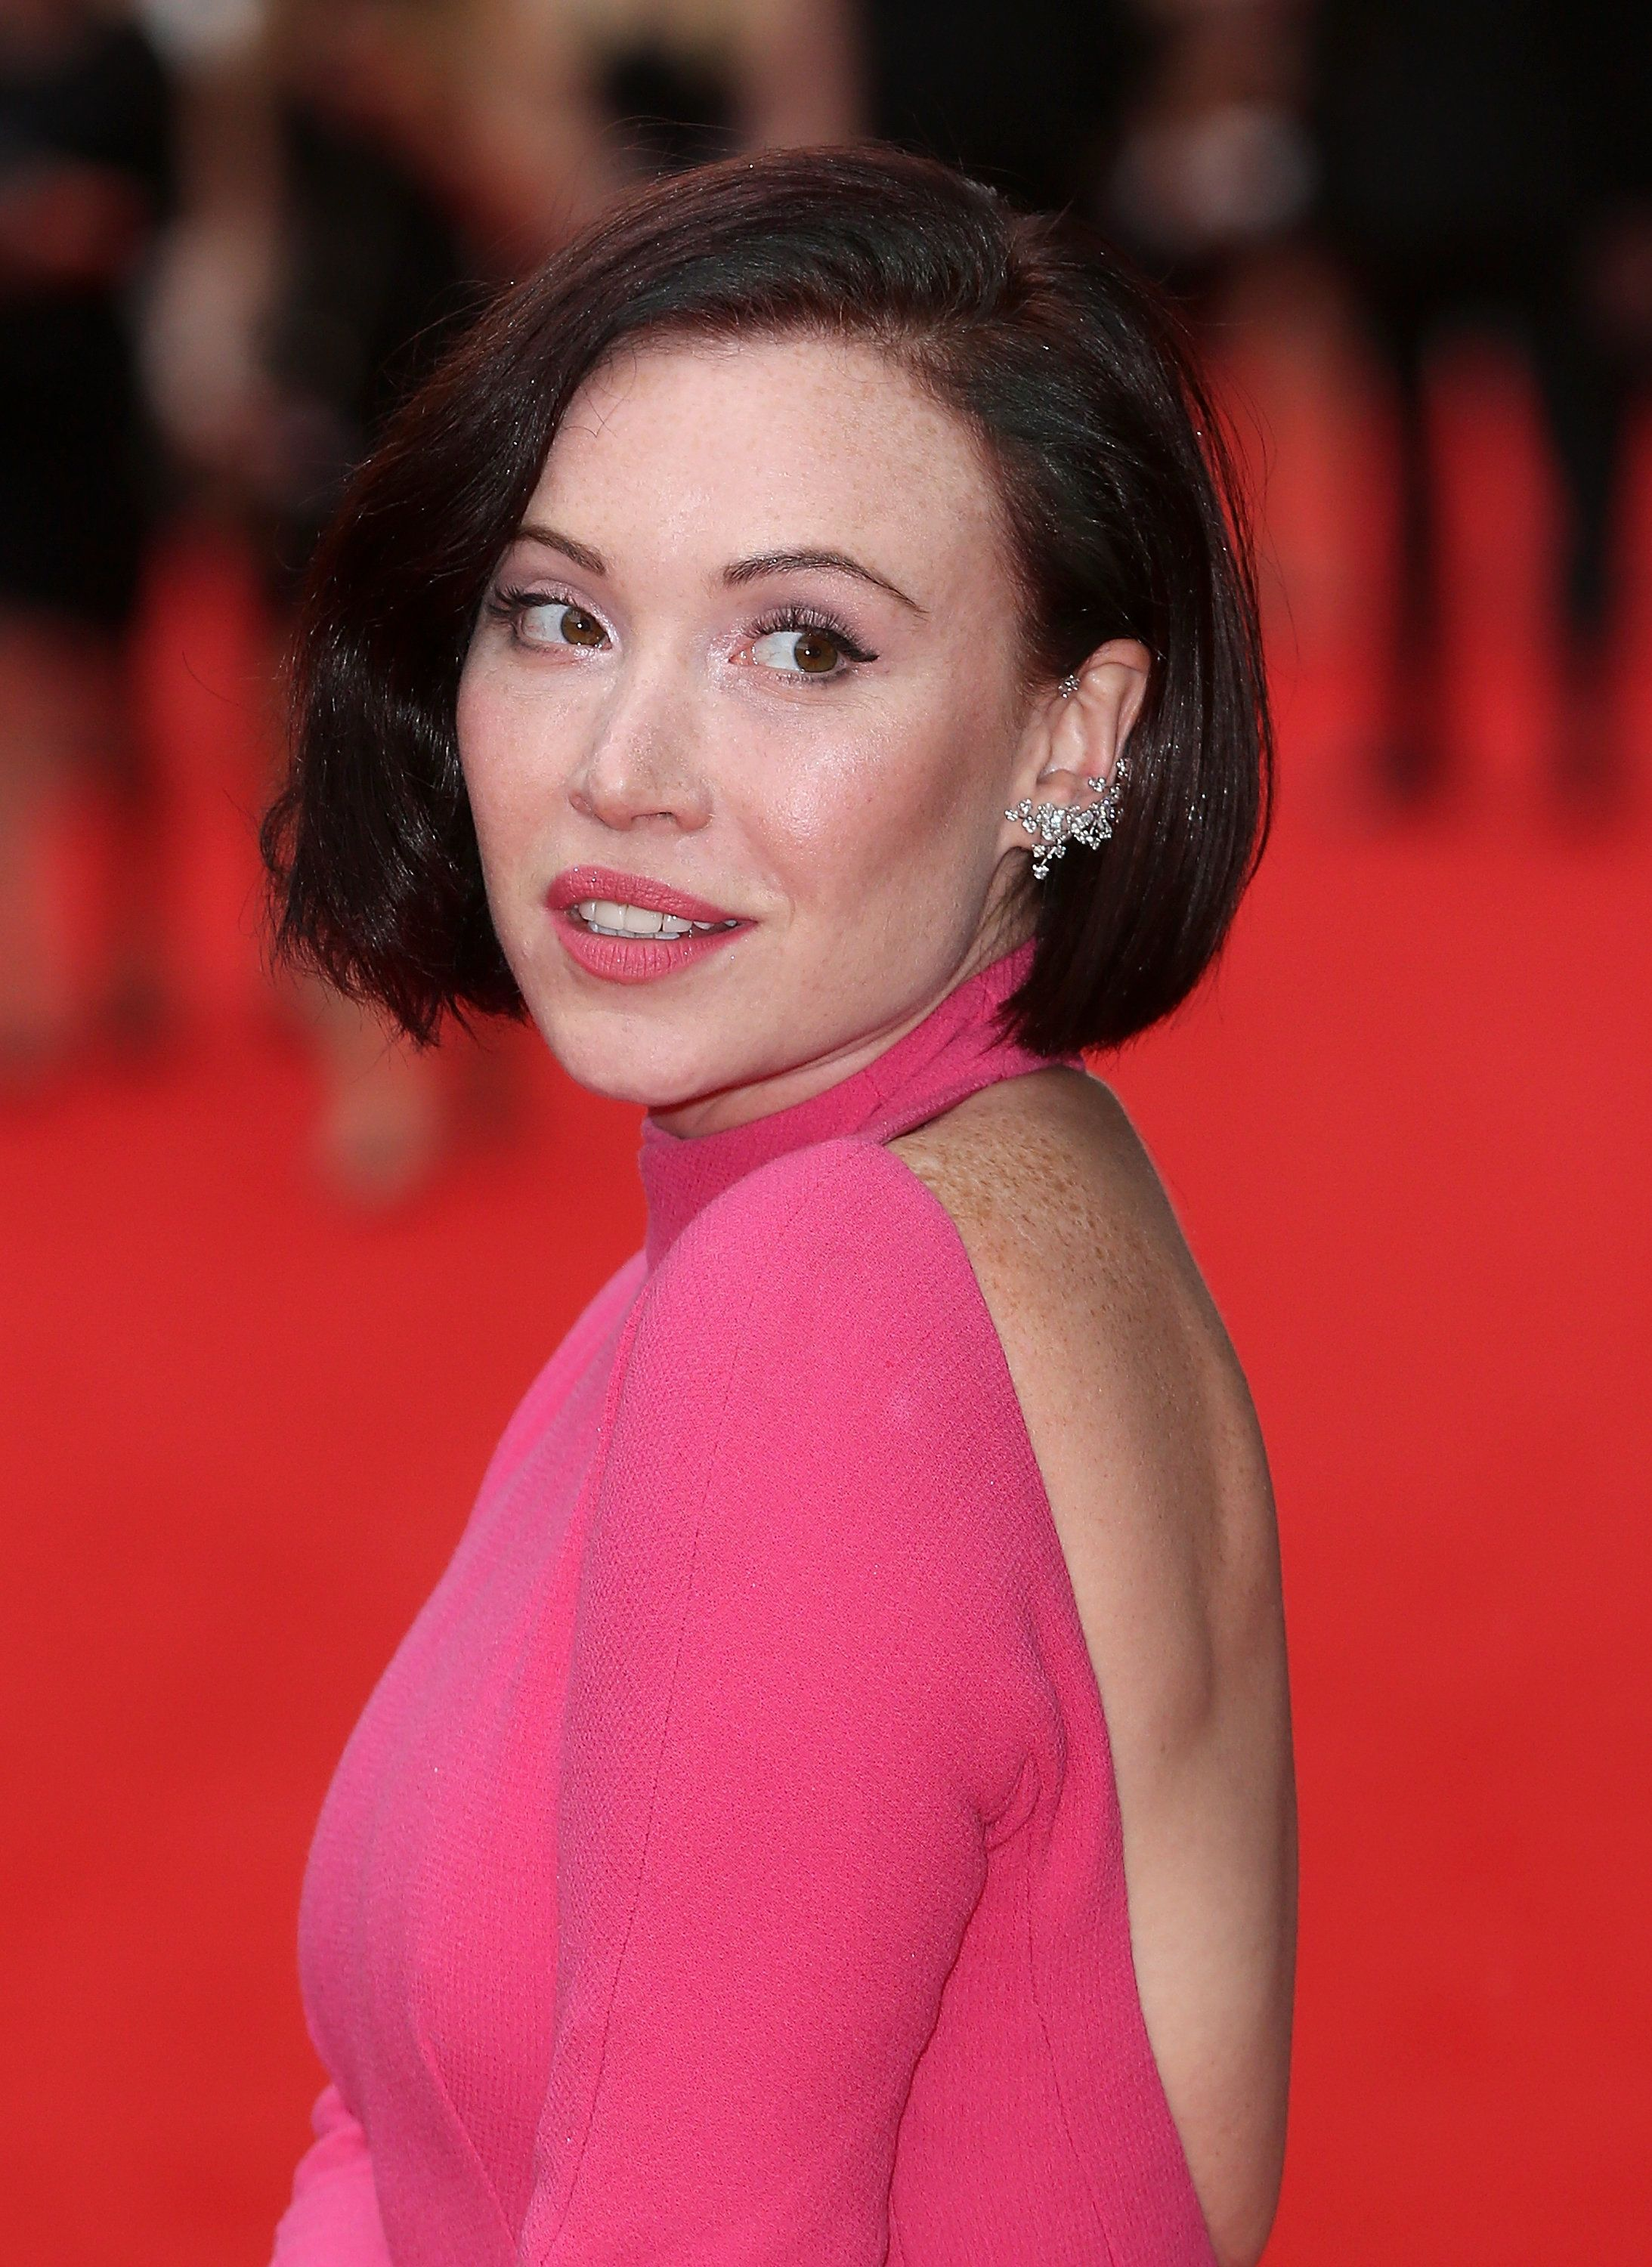 <strong>The film and TV star said she was 'shocked' by the feature&nbsp;</strong>